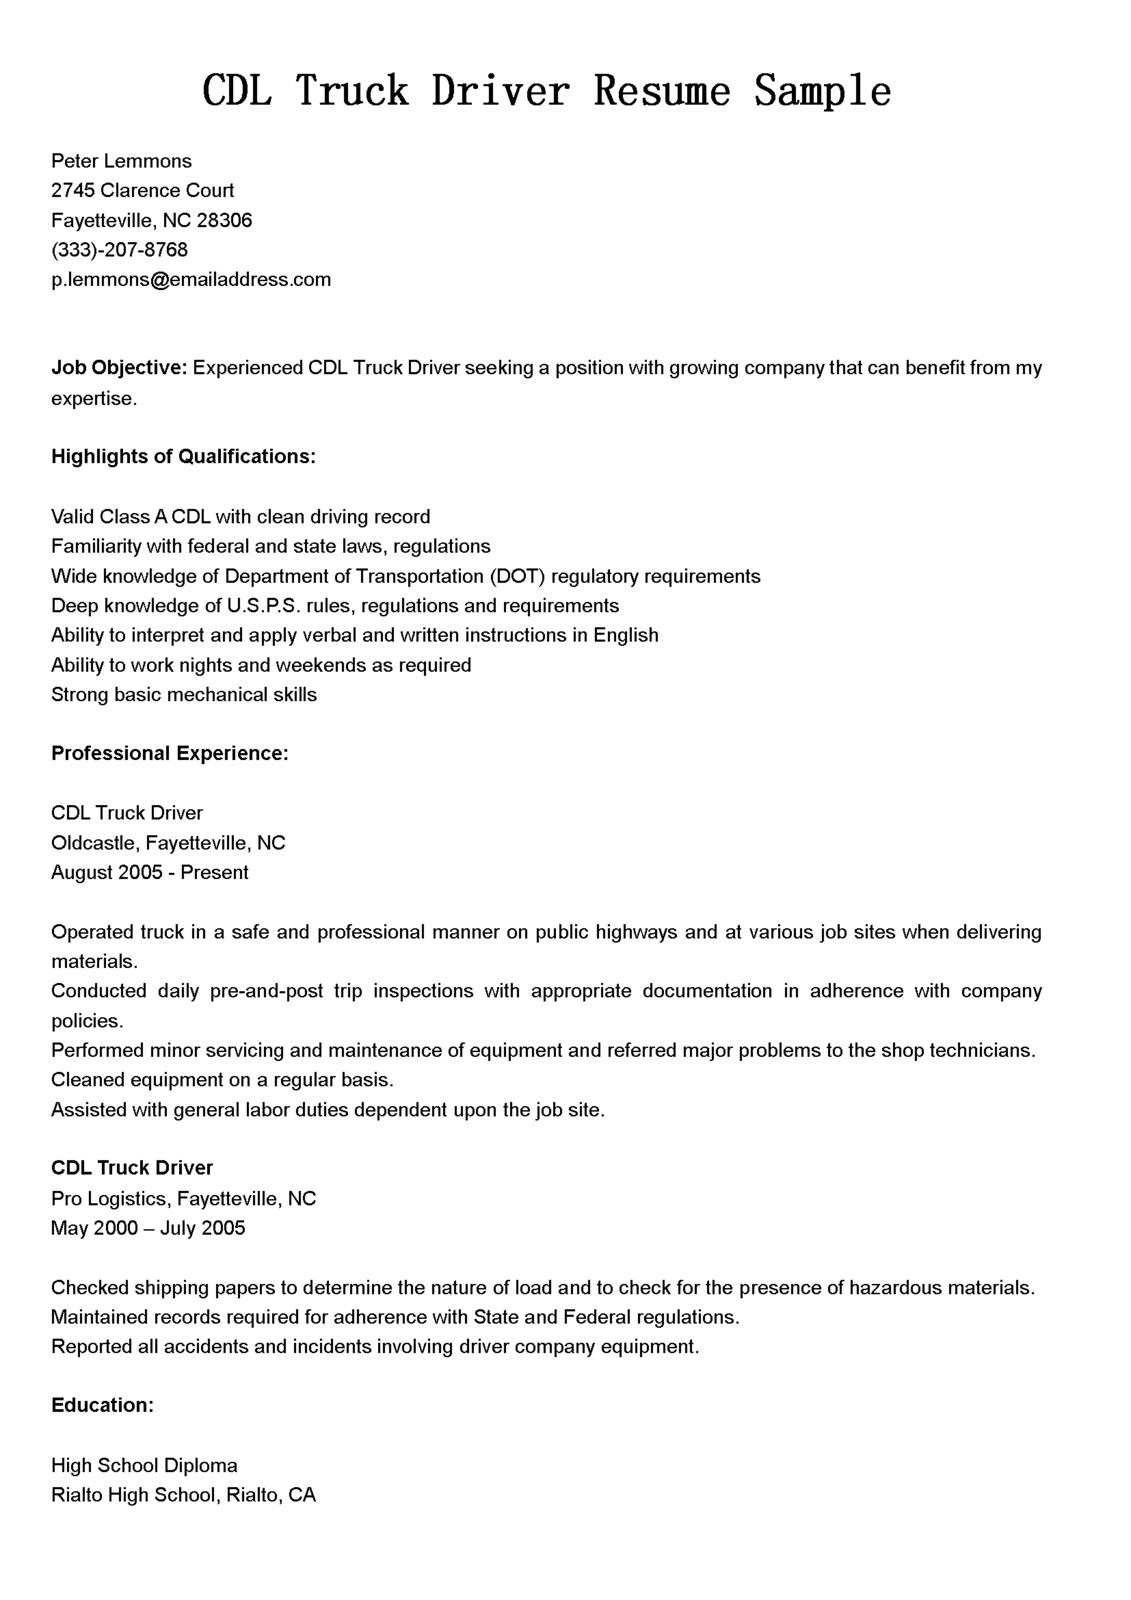 Cdl Driver Resume Sample Driver Resumes Cdl Truck Driver Resume Sample